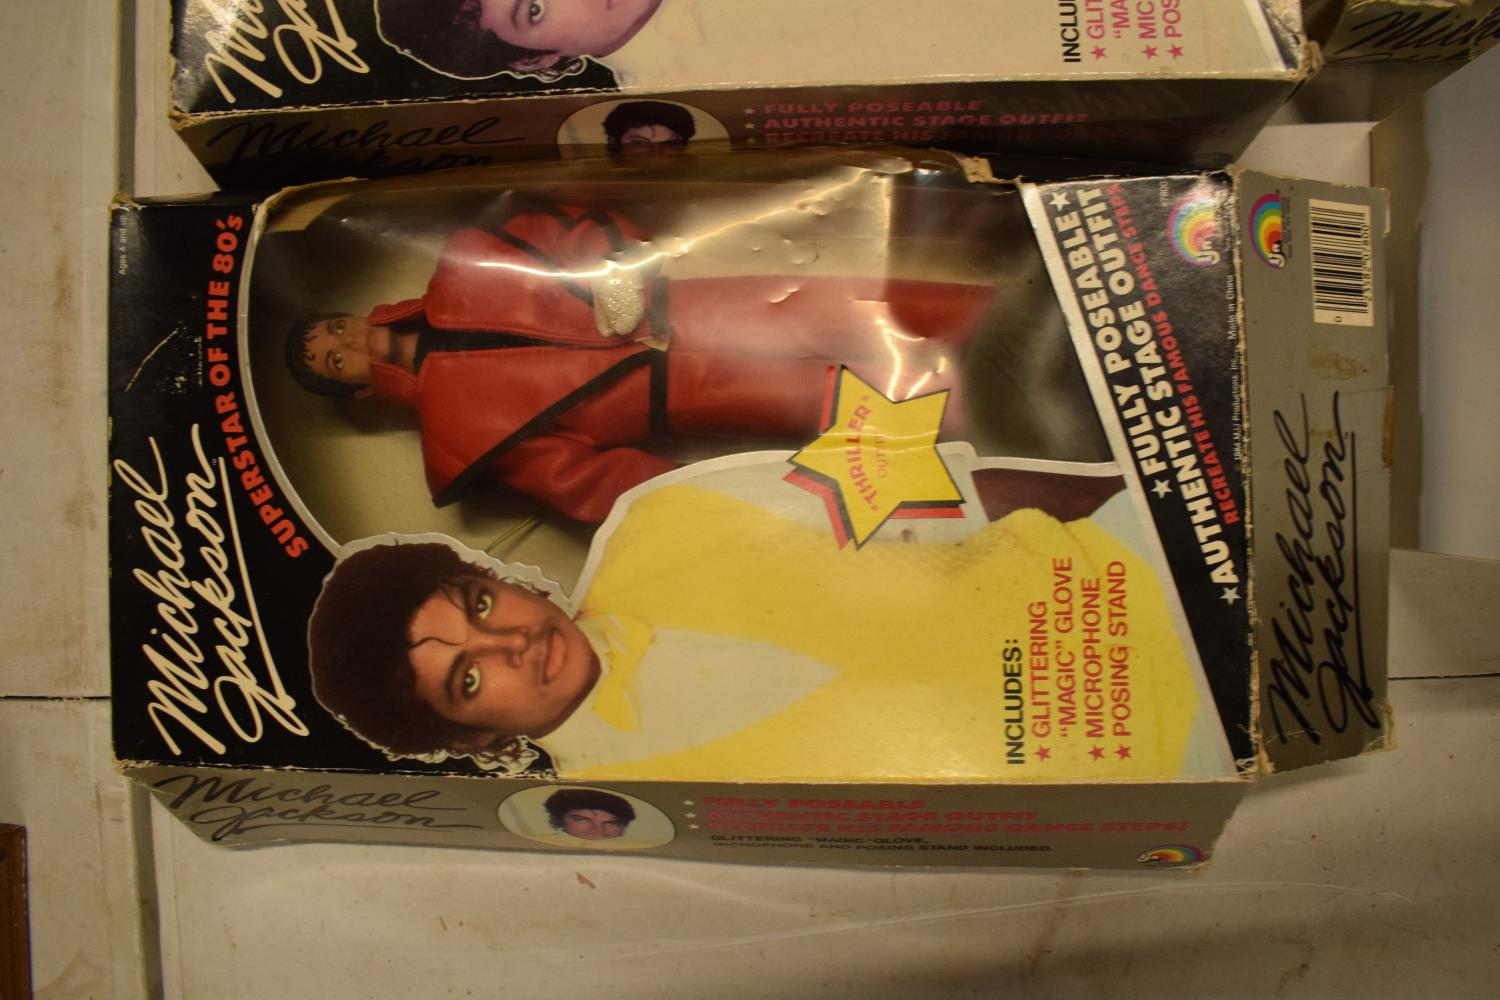 A collection Michael Jackson figures and toys to include 'BAD' figure, electronic microphone and - Image 7 of 9